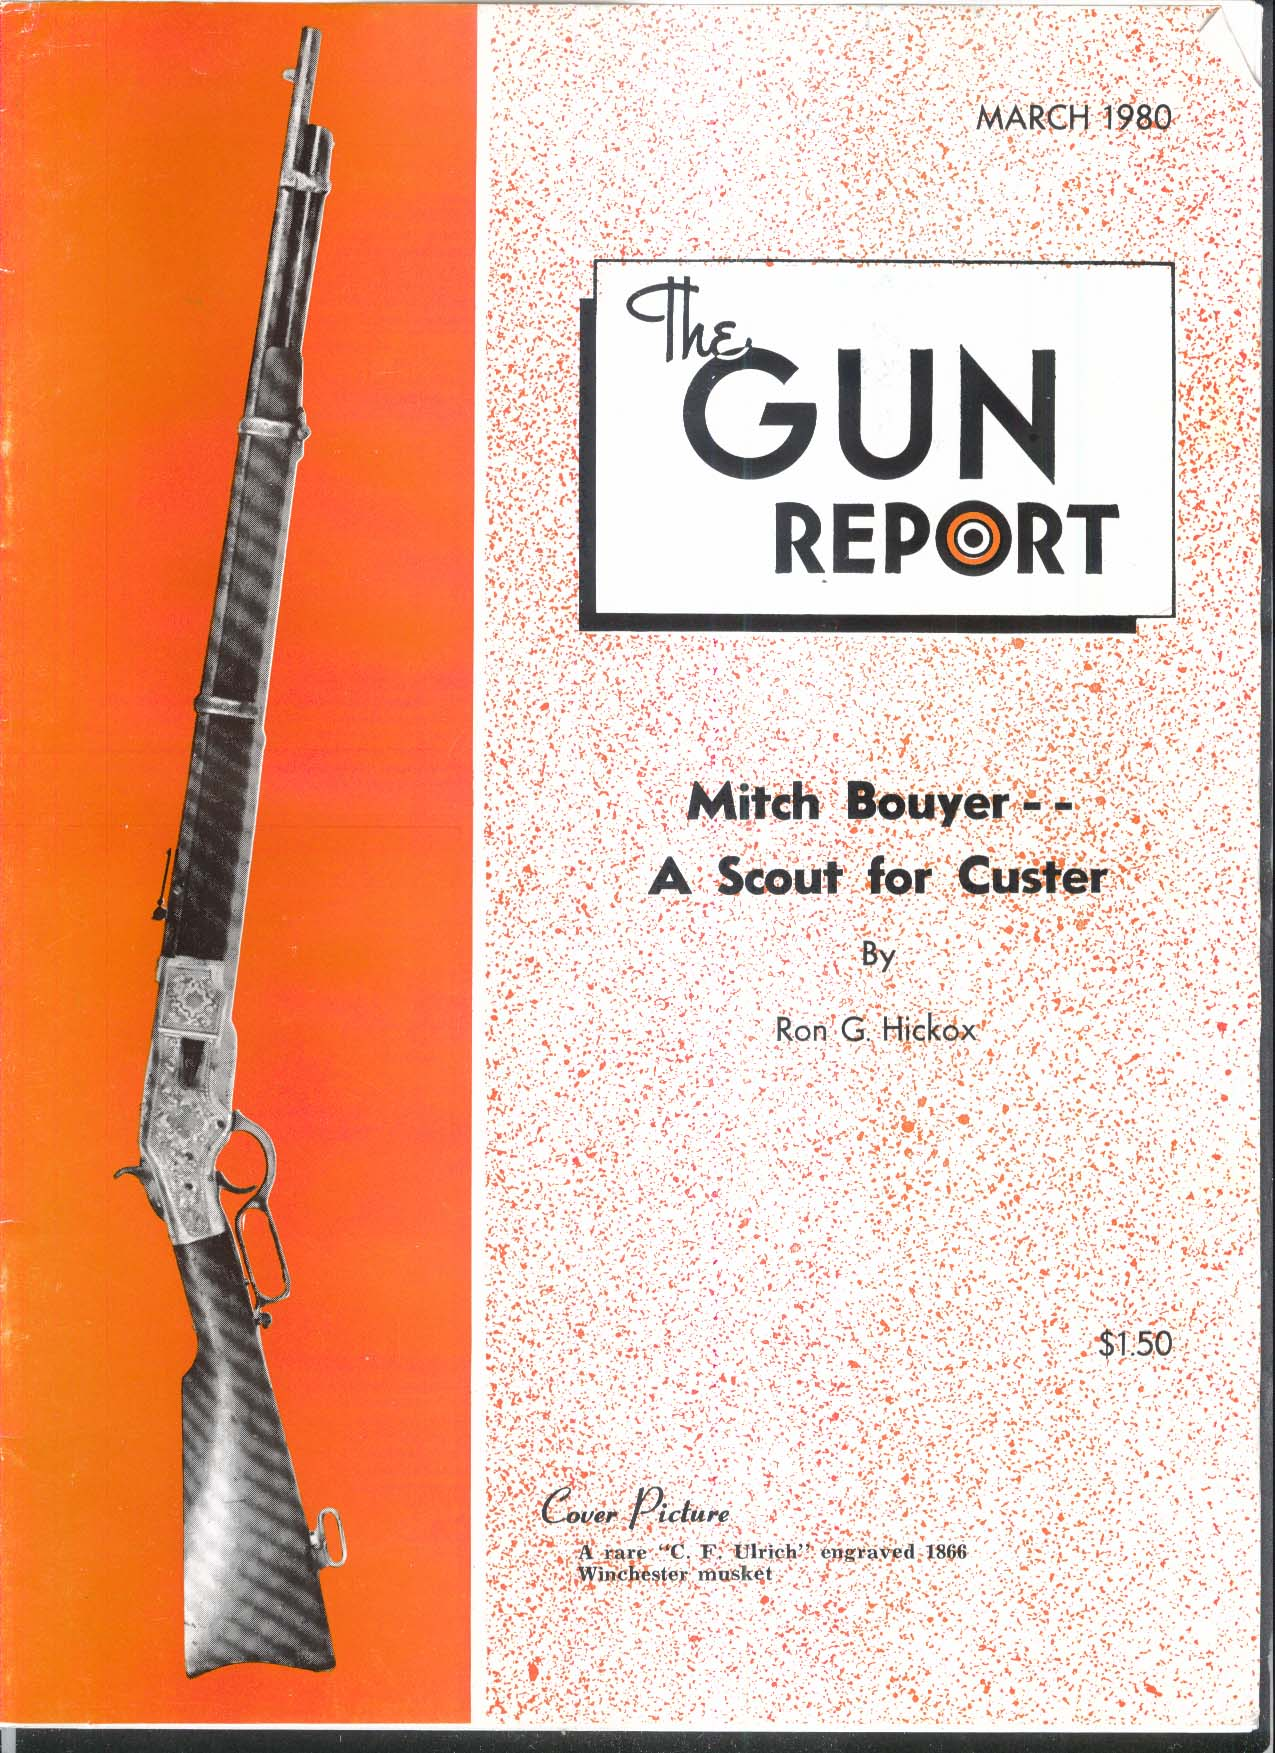 GUN REPORT Mitch Bouyer Ulrich 1866 Winchester Musket NASA Browning + 3 1980